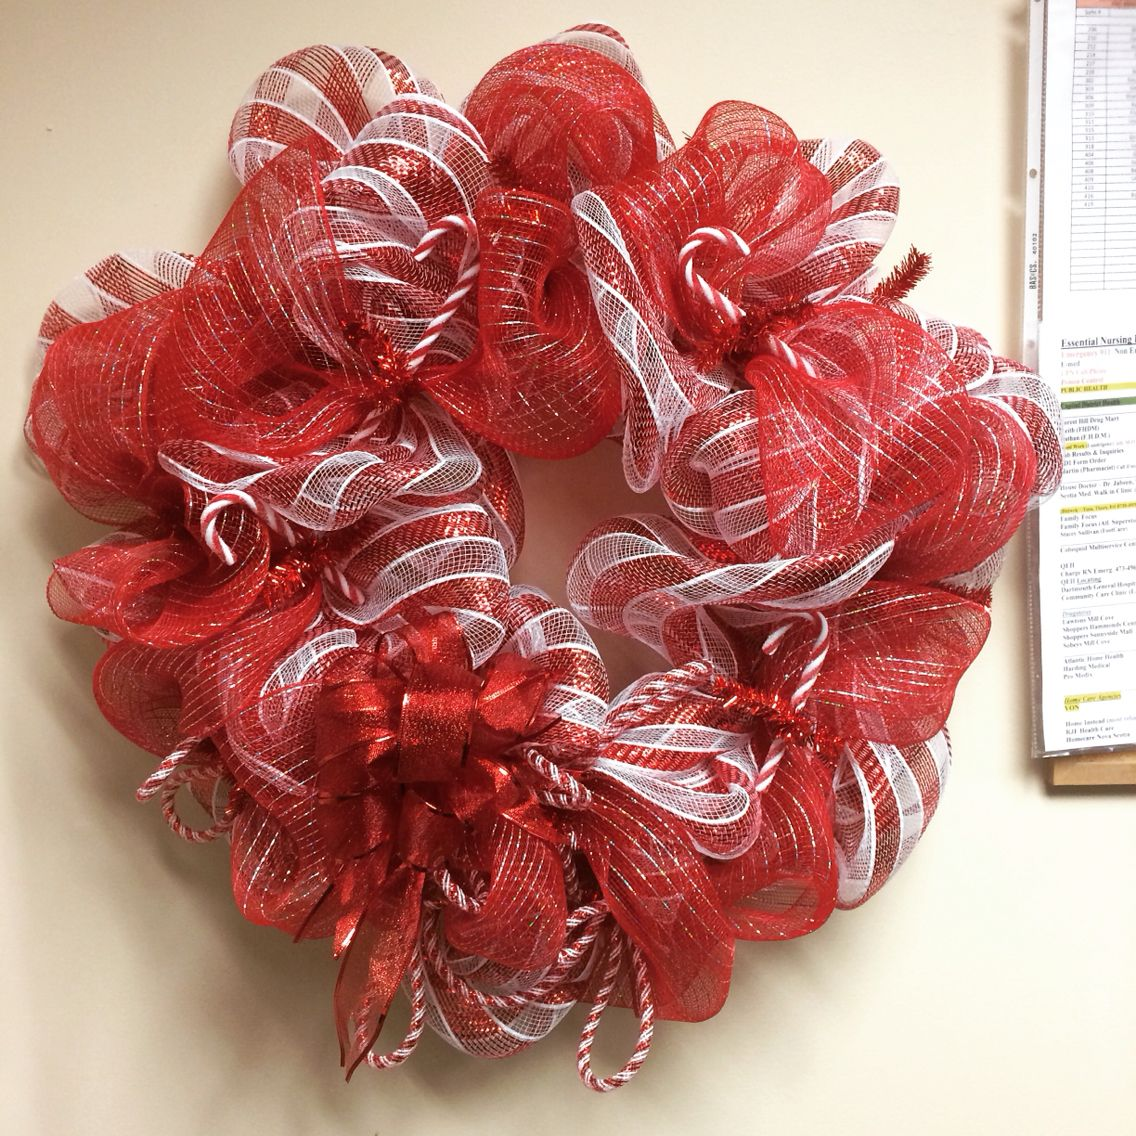 Candy cane deco mesh wreath #deco #mesh #christmas #wreath #decomesh #xmas #wreaths